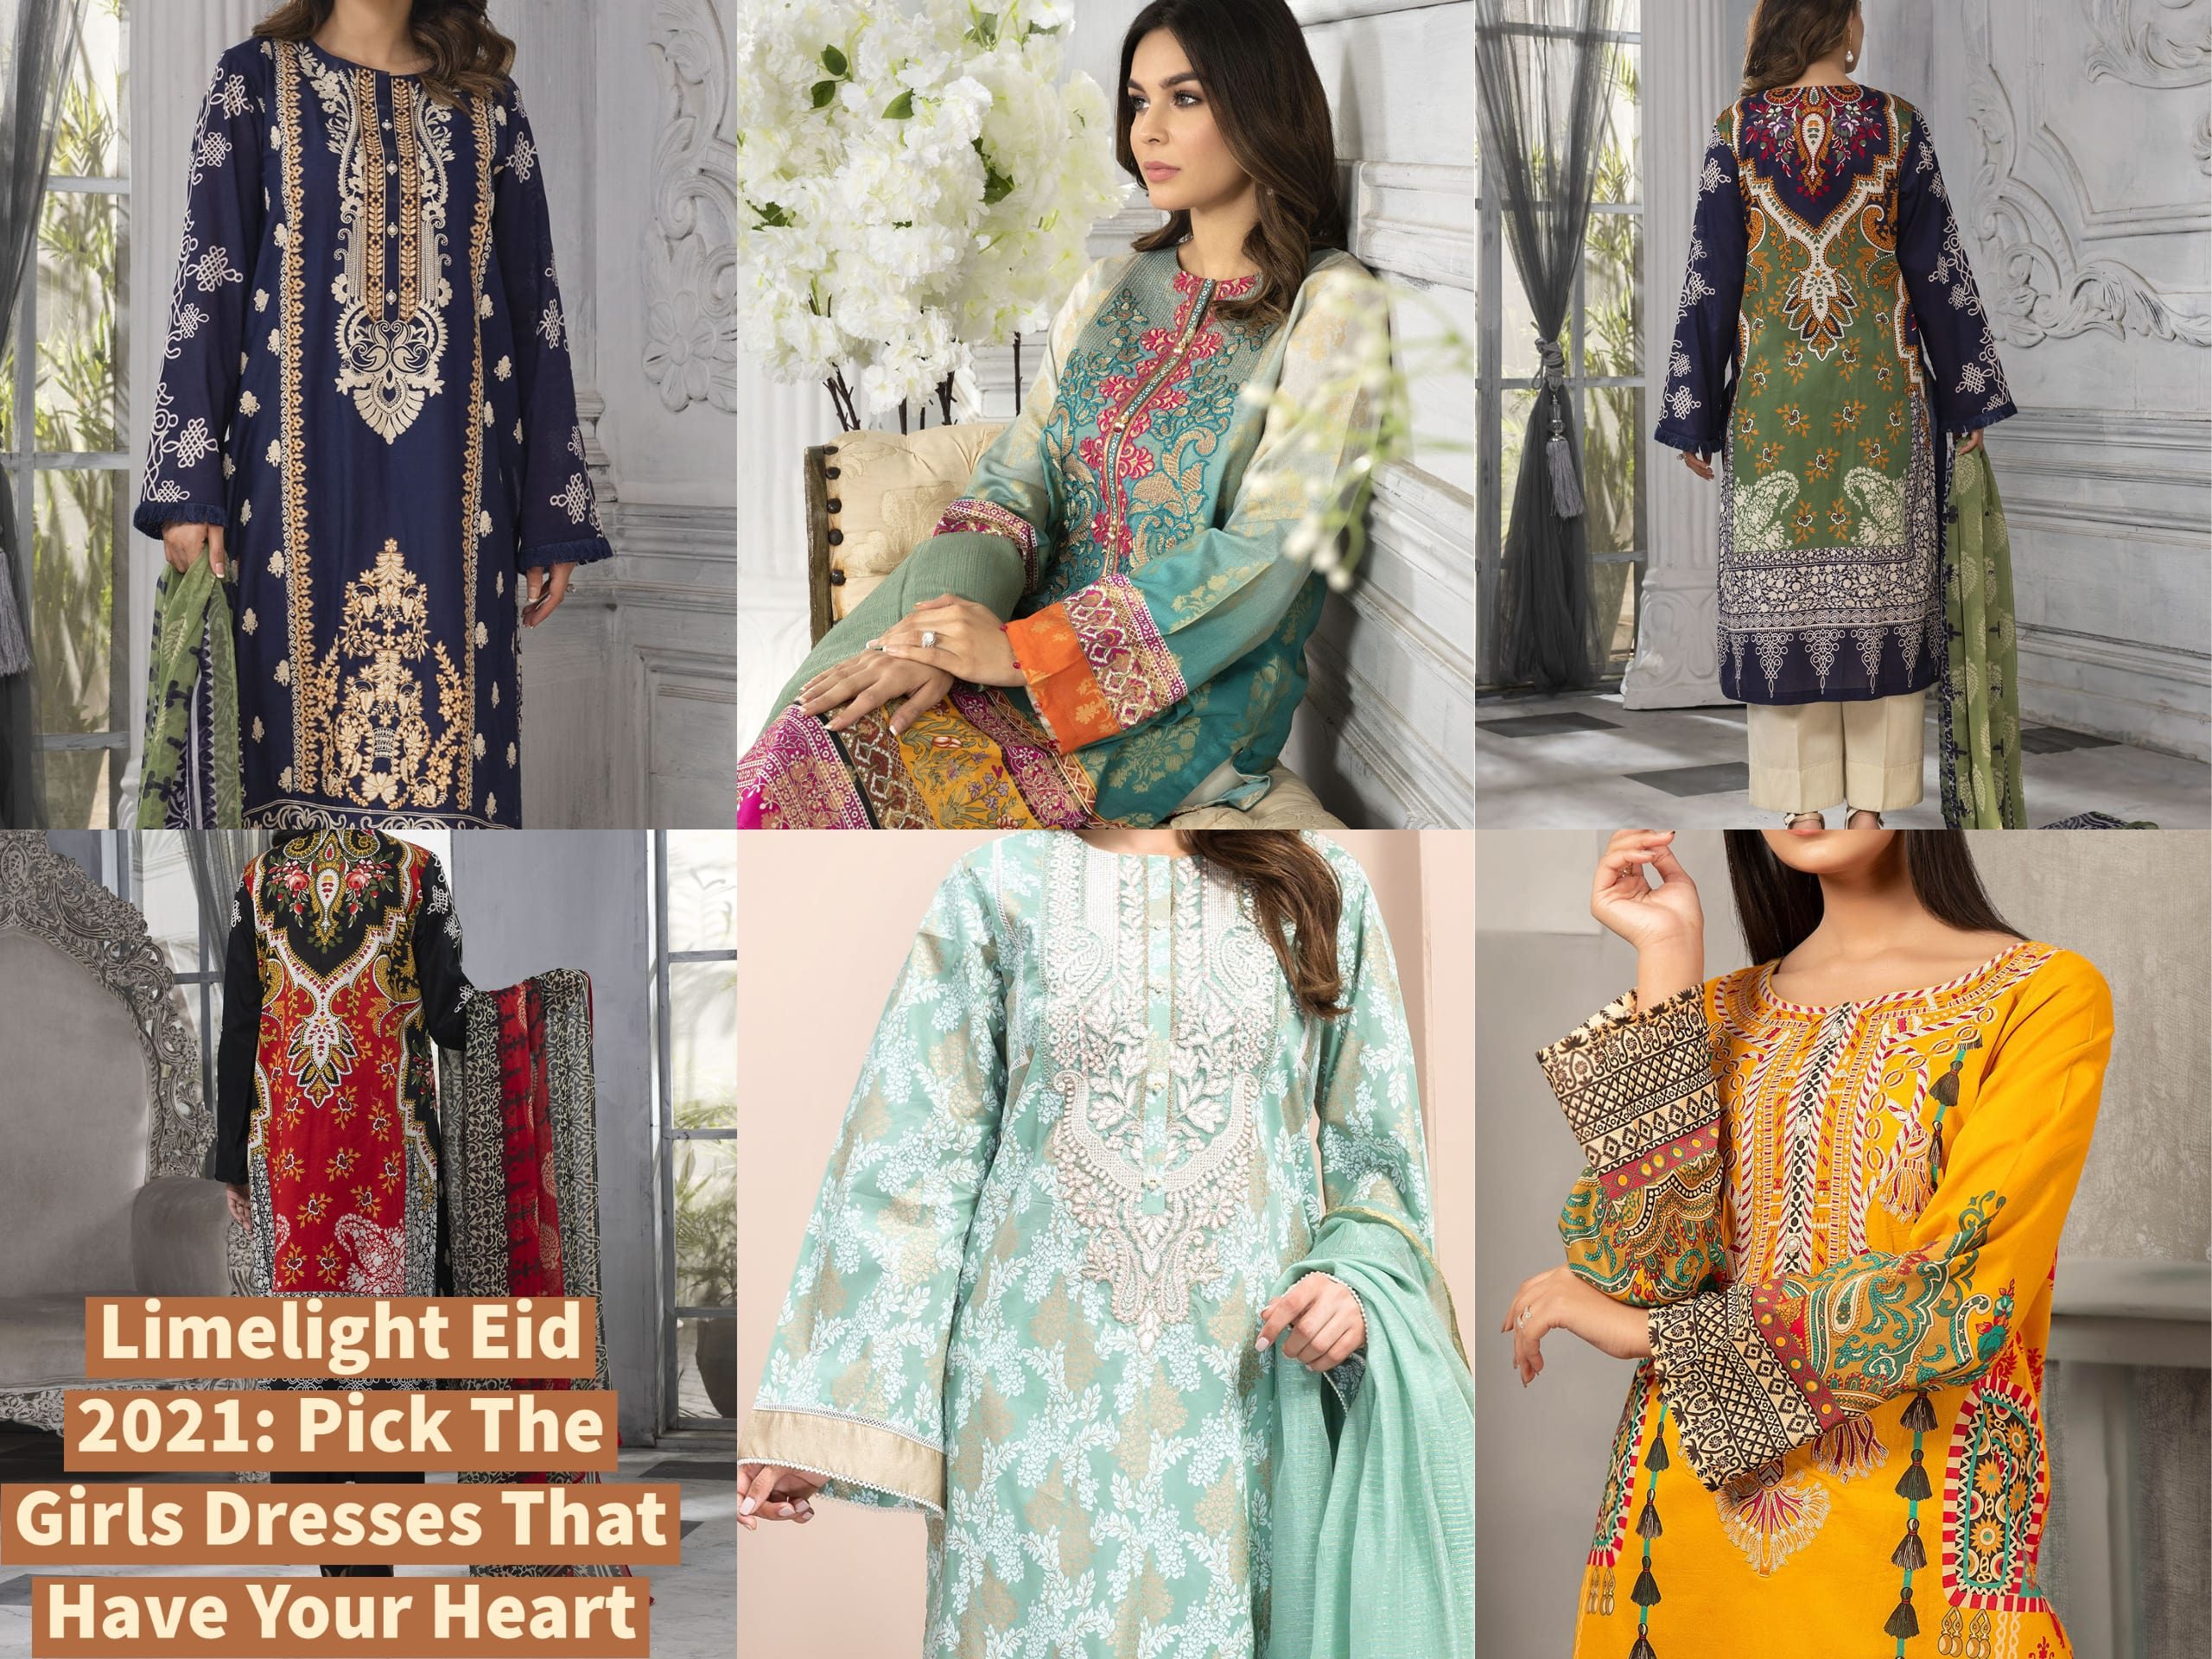 Limelight Eid 2021: Pick The Girls Dresses That Have Your Heart